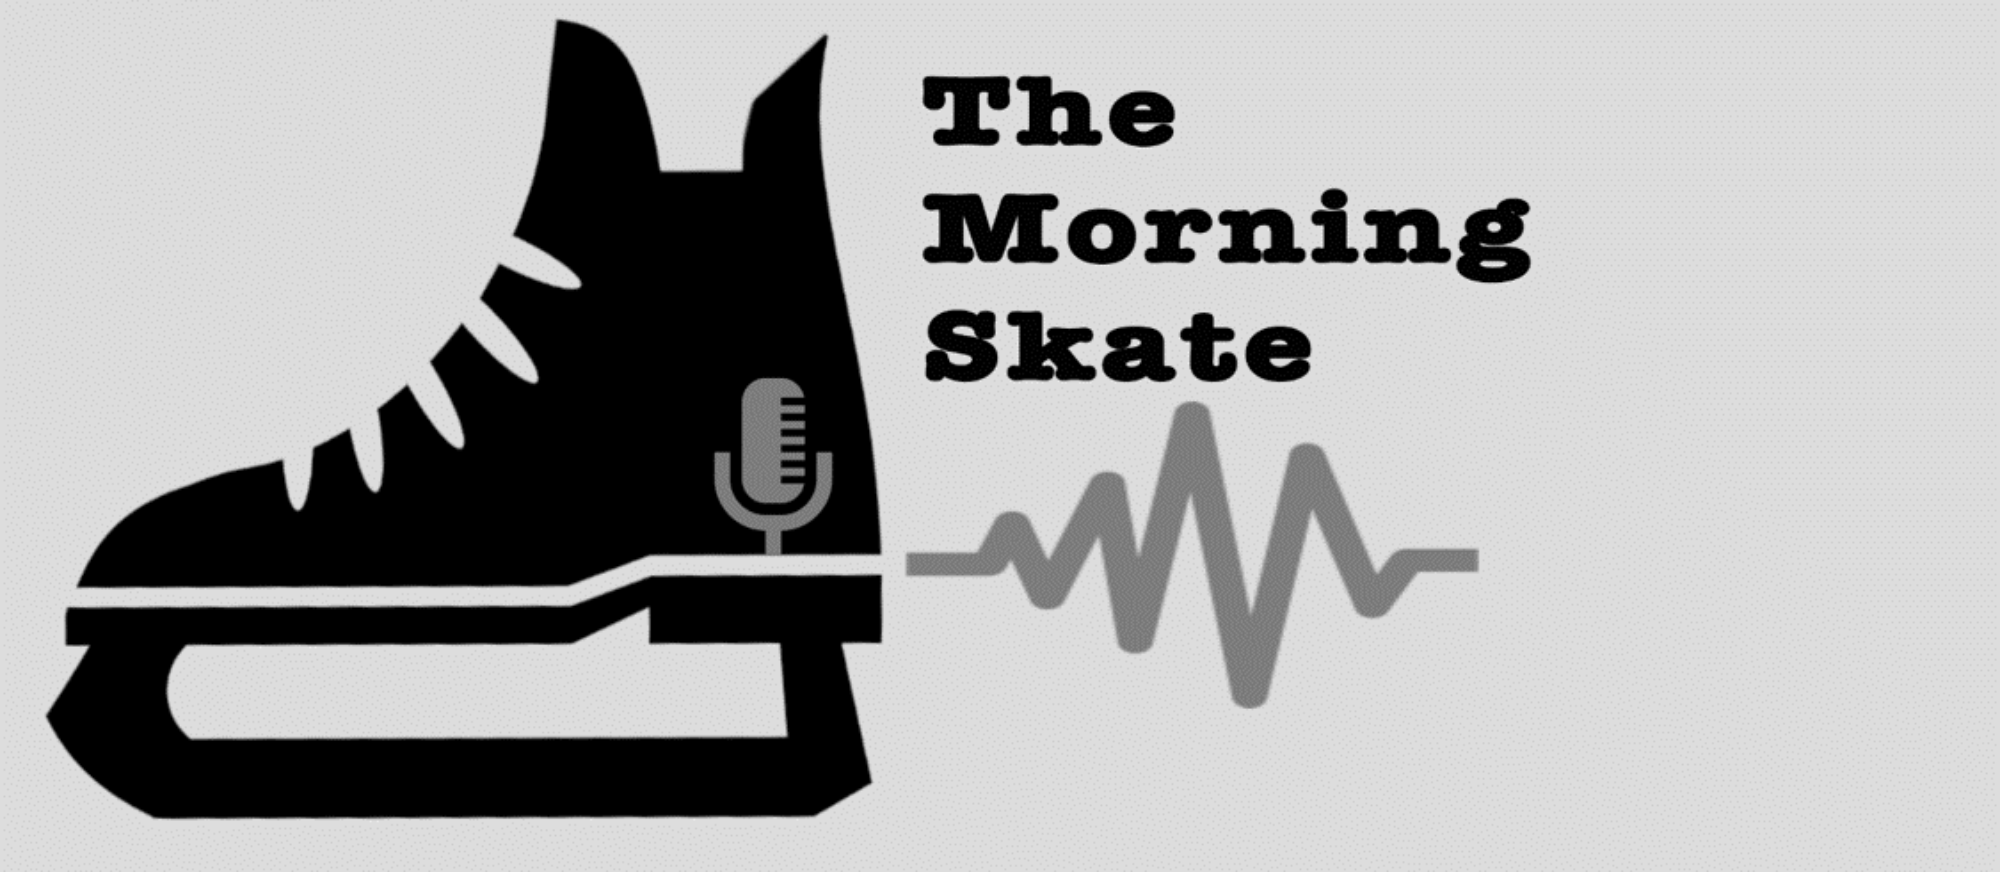 The Morning Skate Podcast